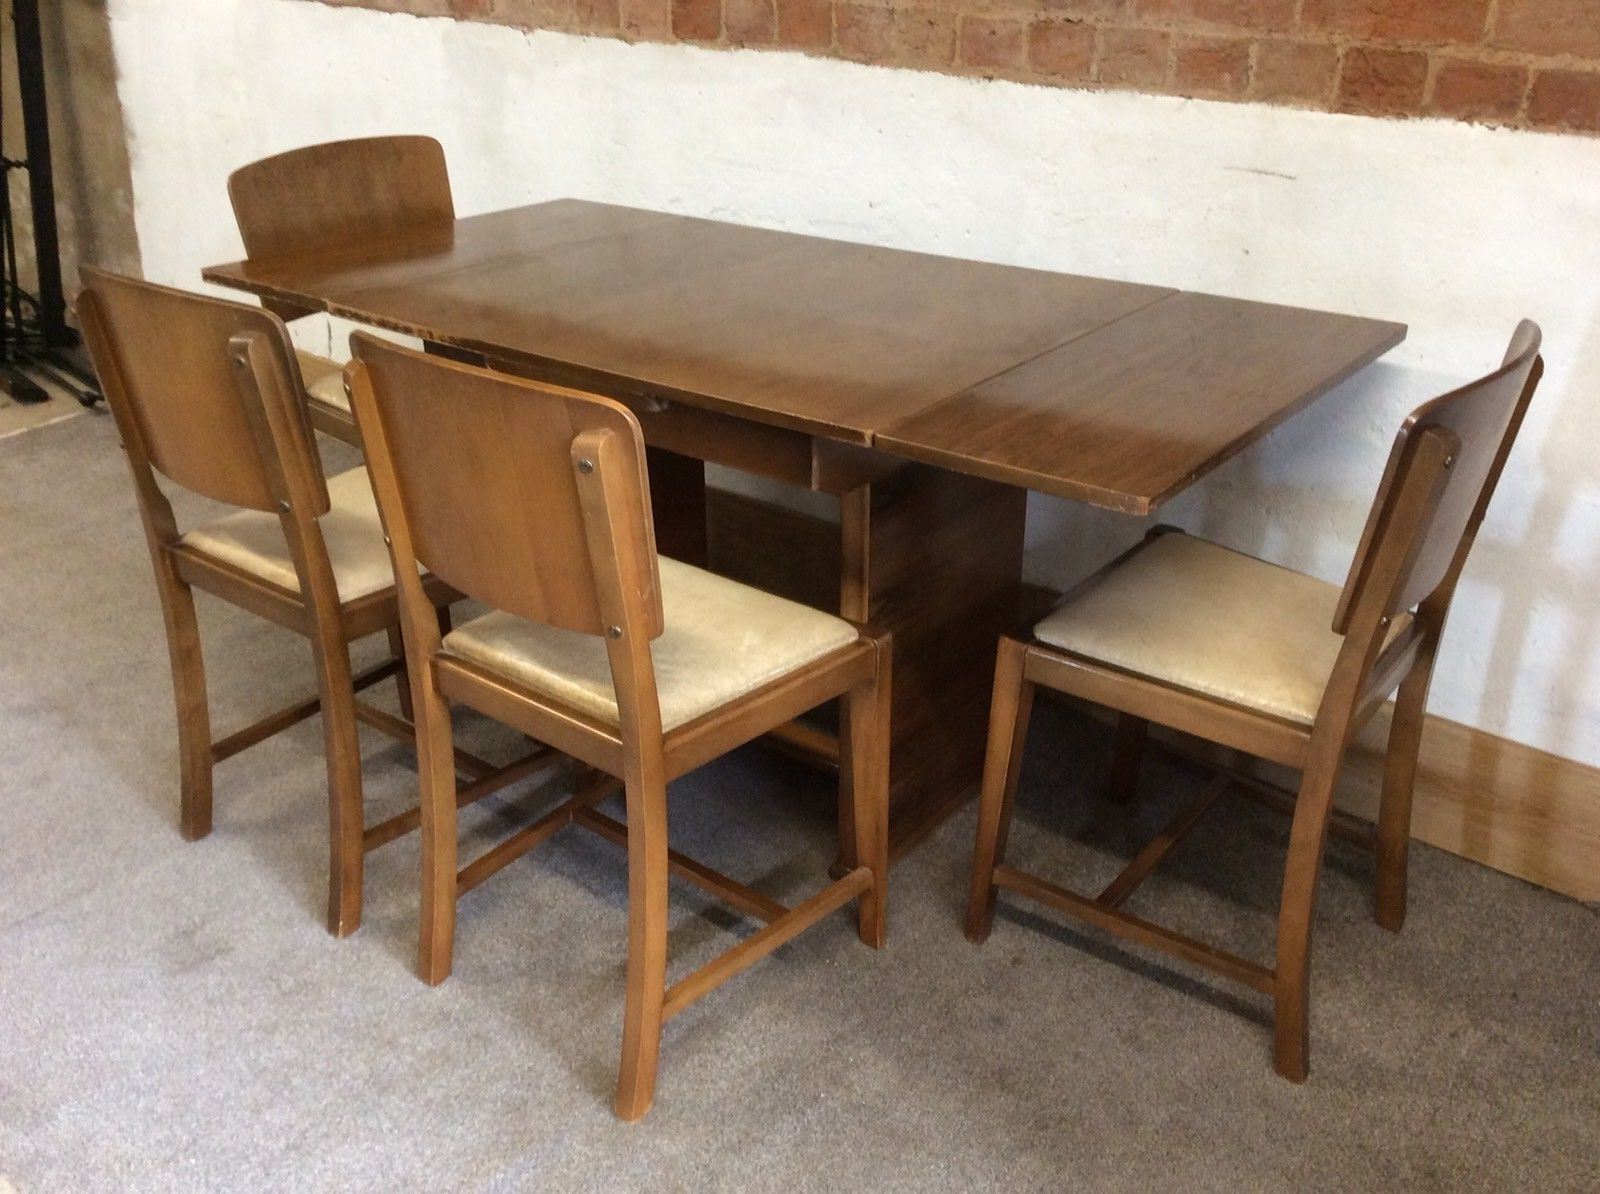 Mid Century Retro Vintage Extending Dining Table And Four Chairs Pertaining To 2017 Retro Extending Dining Tables (View 6 of 25)